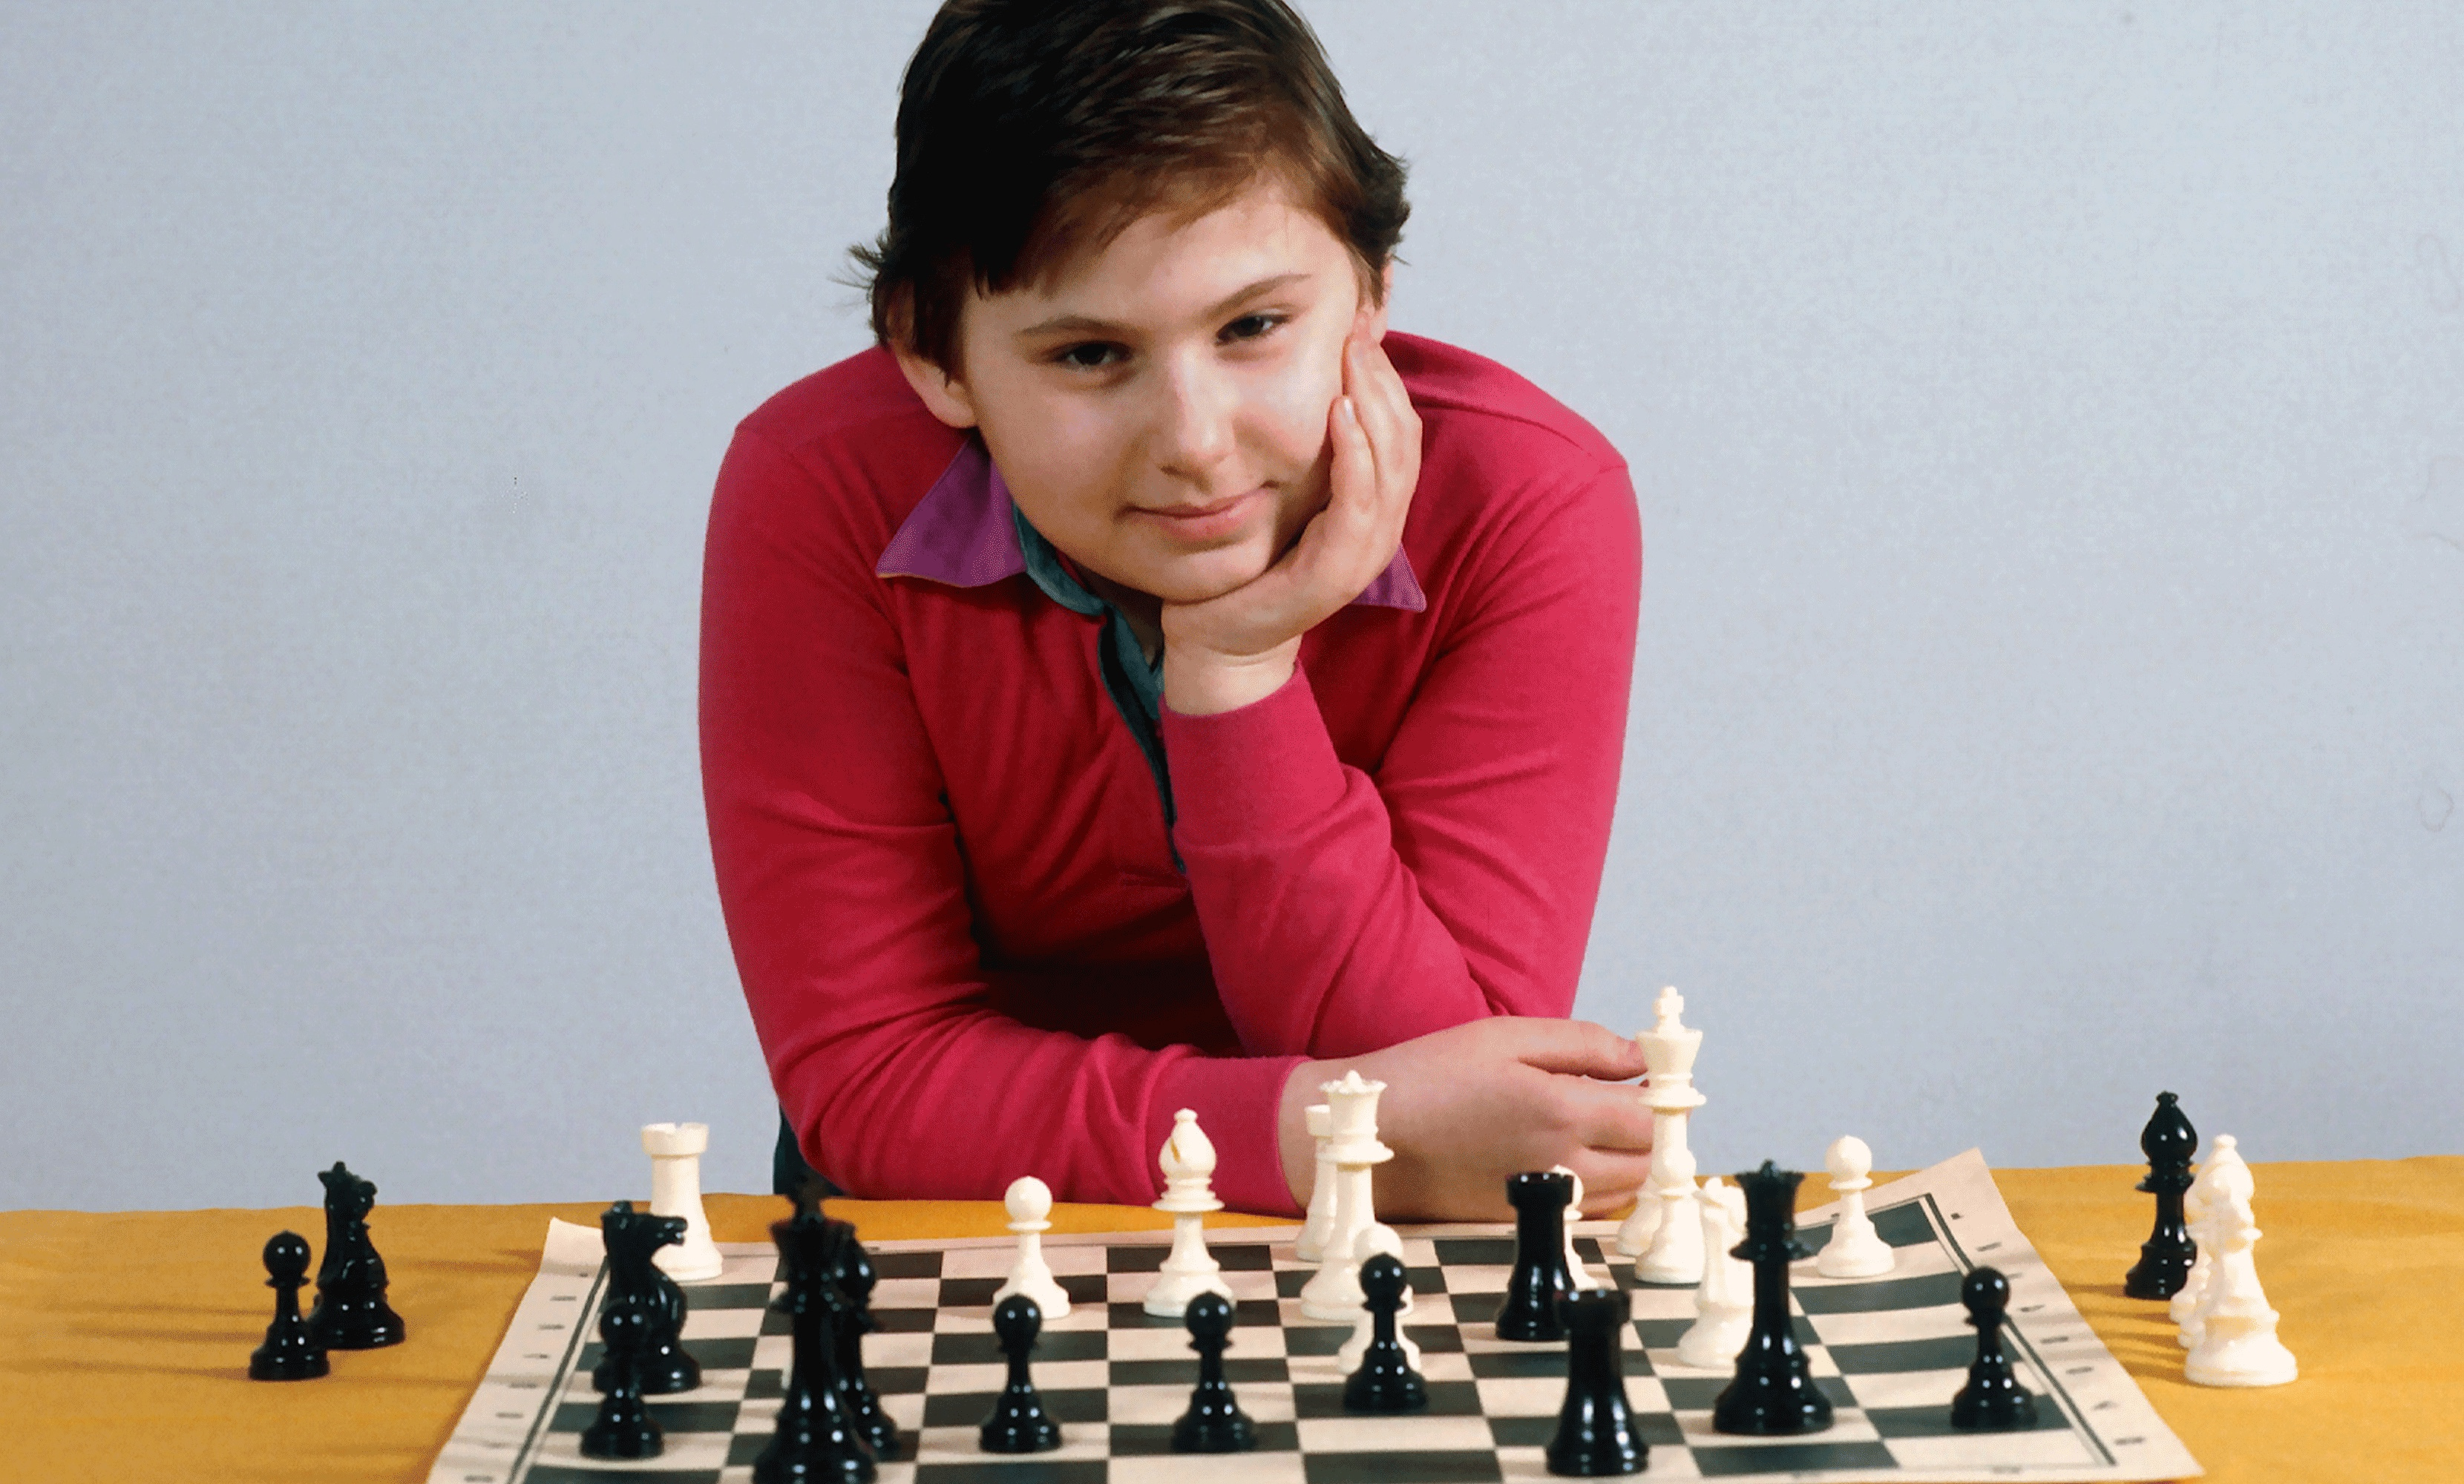 Polgár at age 9. Sporting a bright red shirt and close-cropped hair, she leans over a paper chess board, cupping her face in her hand.